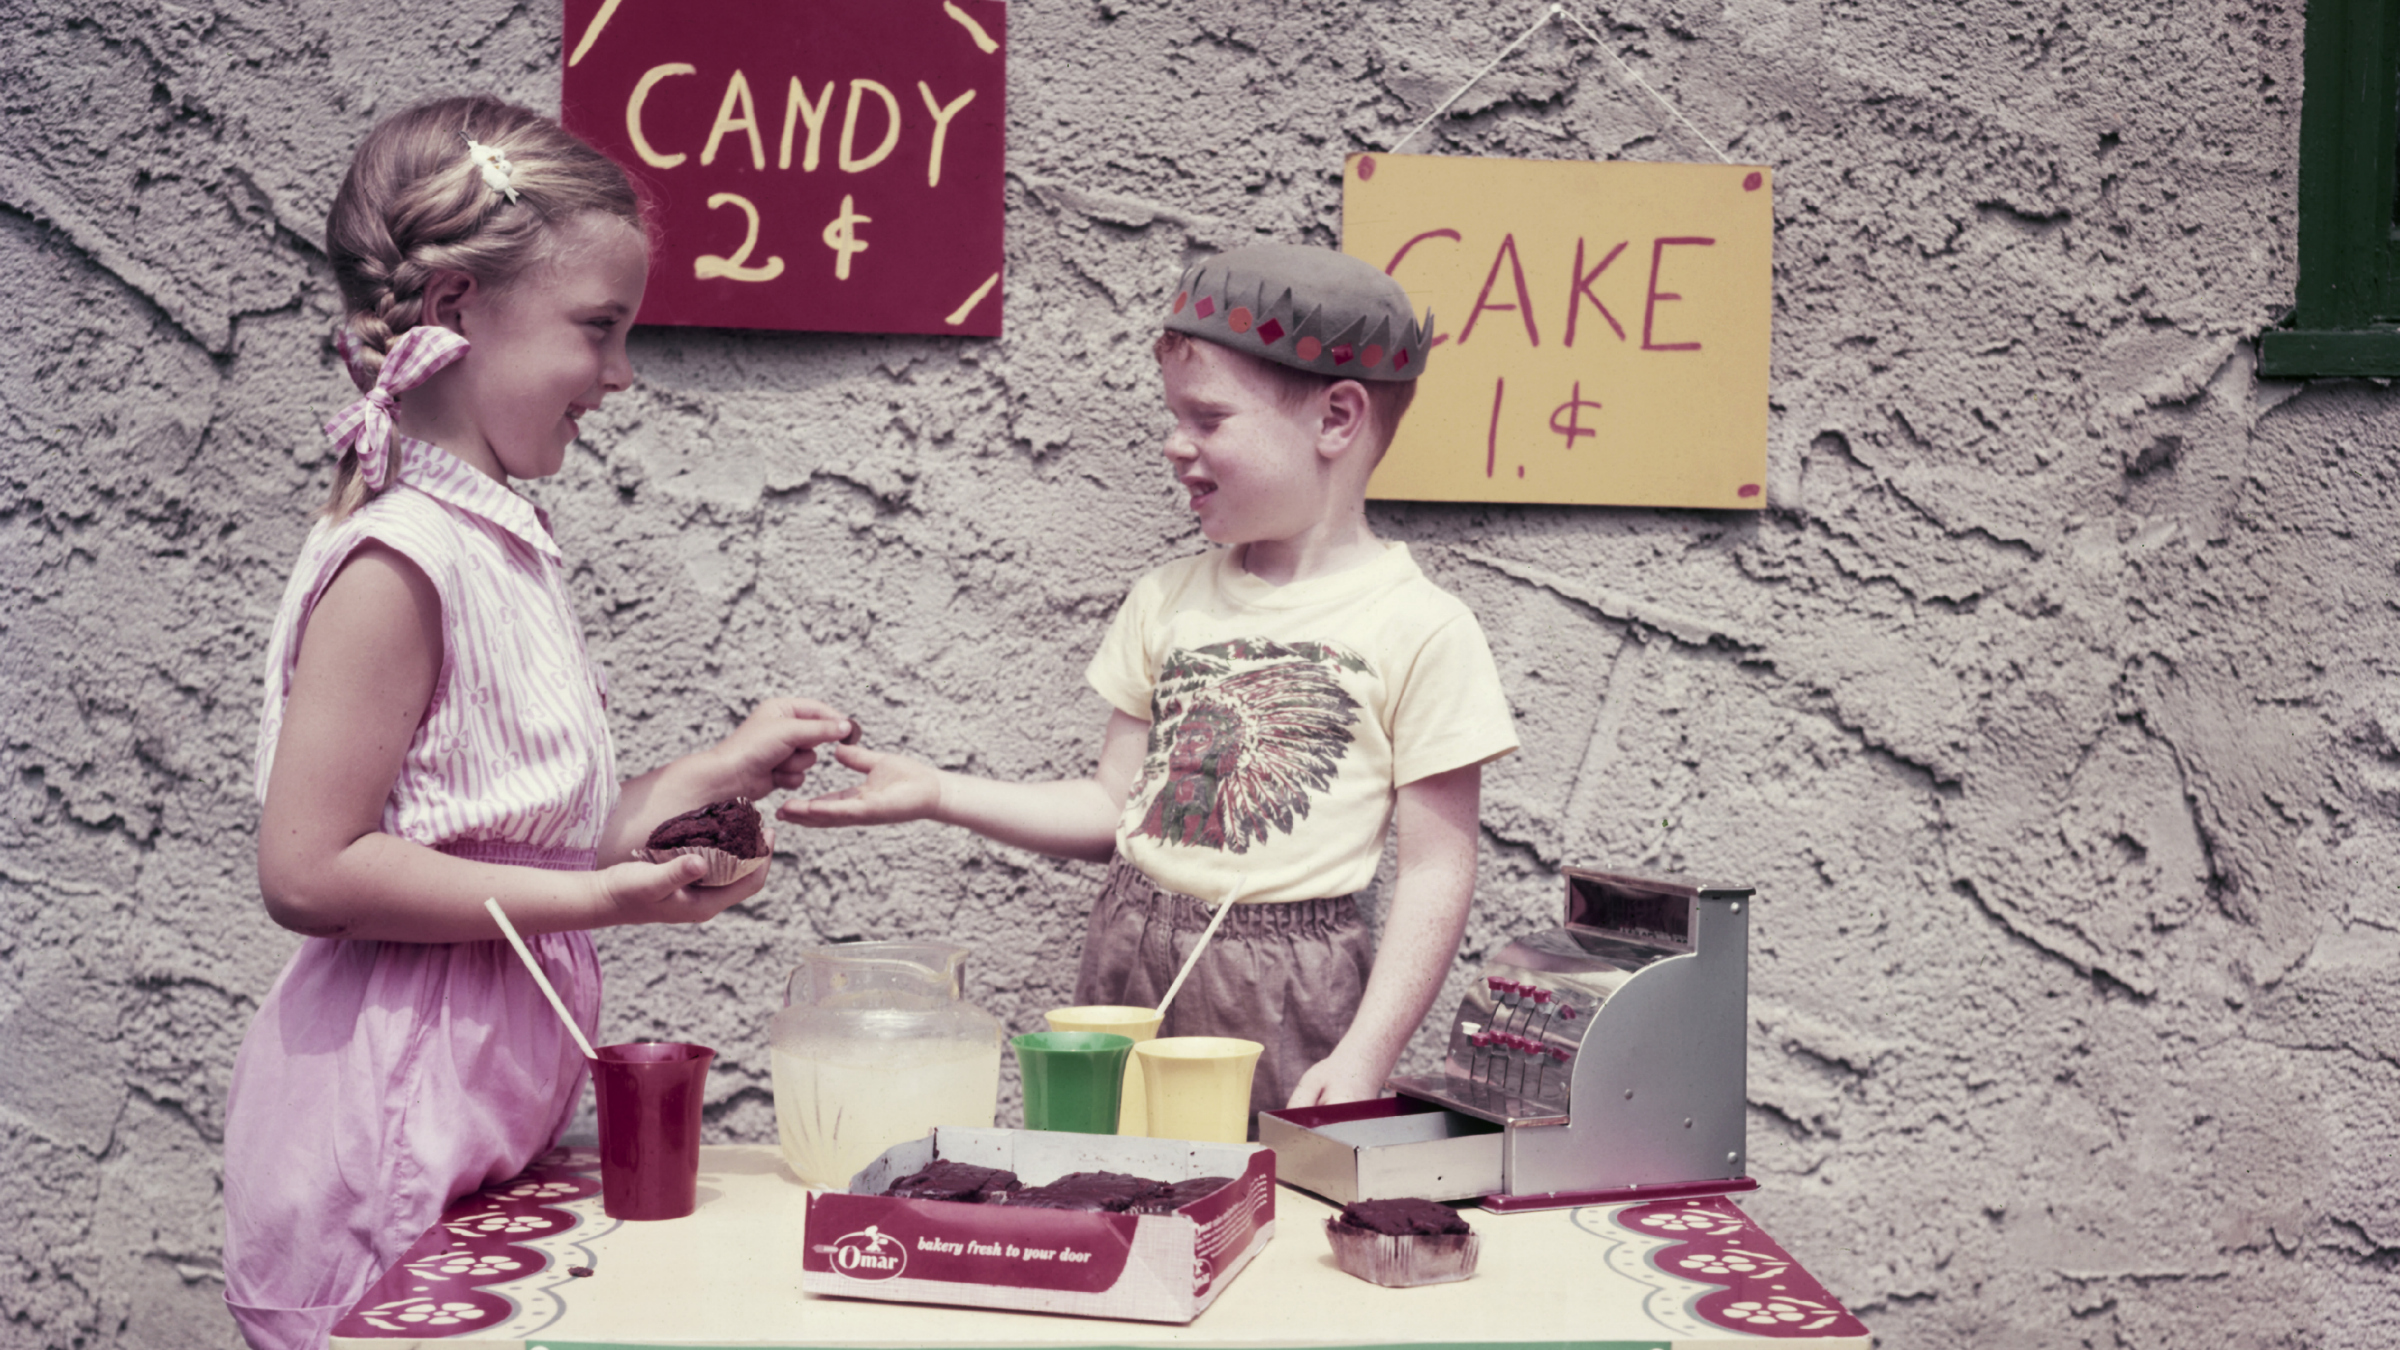 Candy and lemonade stand